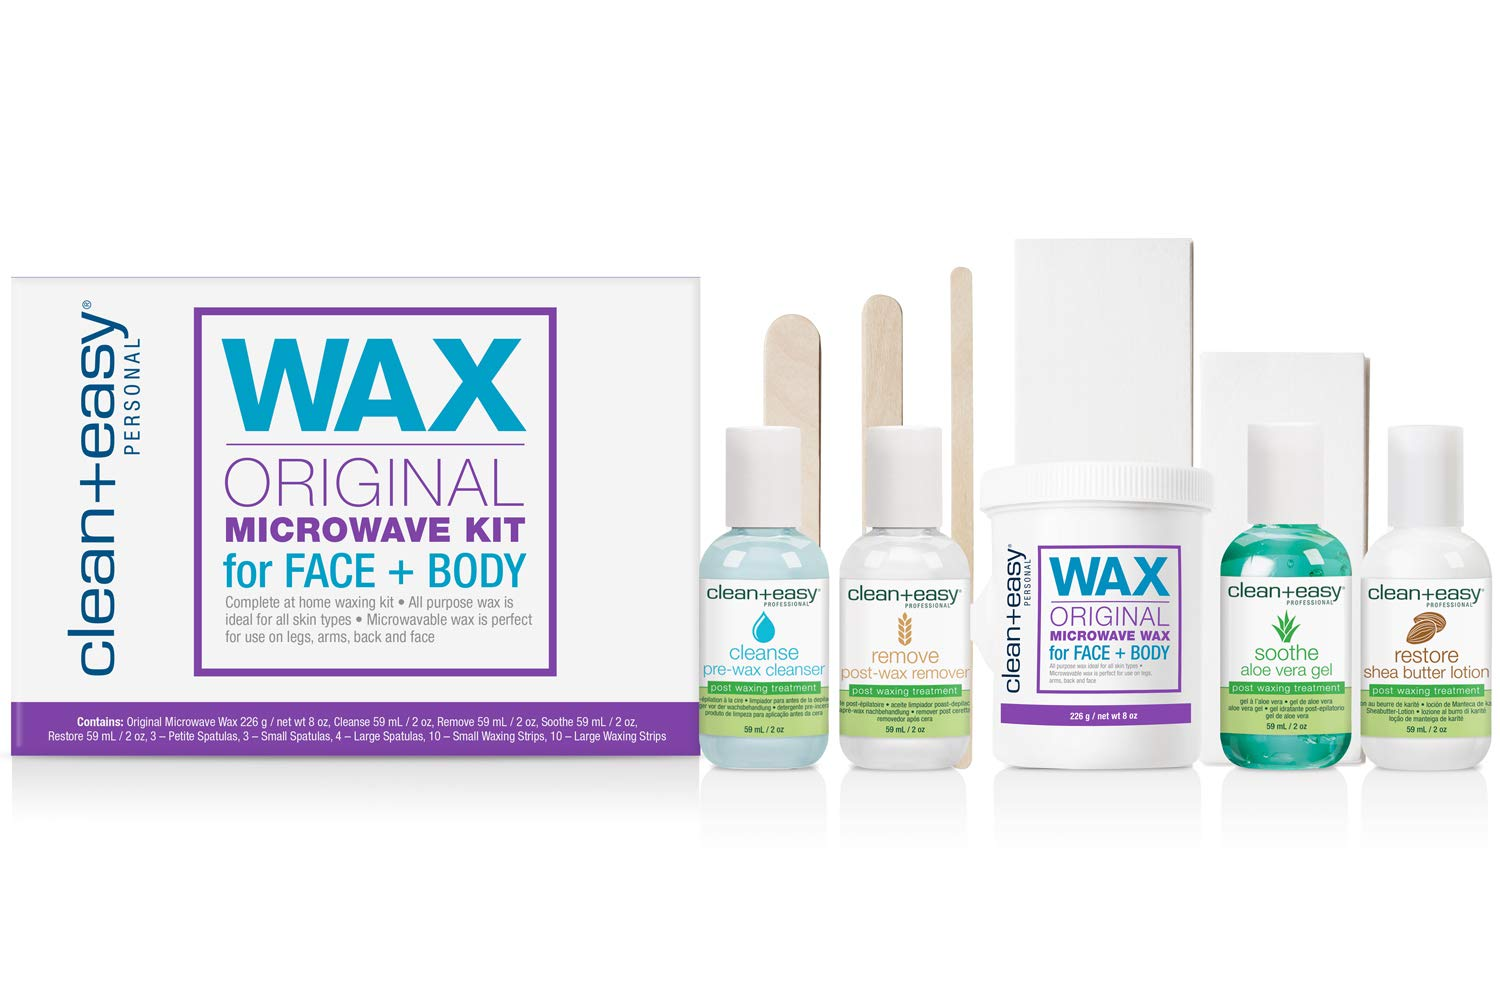 Clean + Easy Original Microwave Kit for Face & Body, All in one Waxing Essentials for Full Body Hair Removal Treatment, 12 Ct.